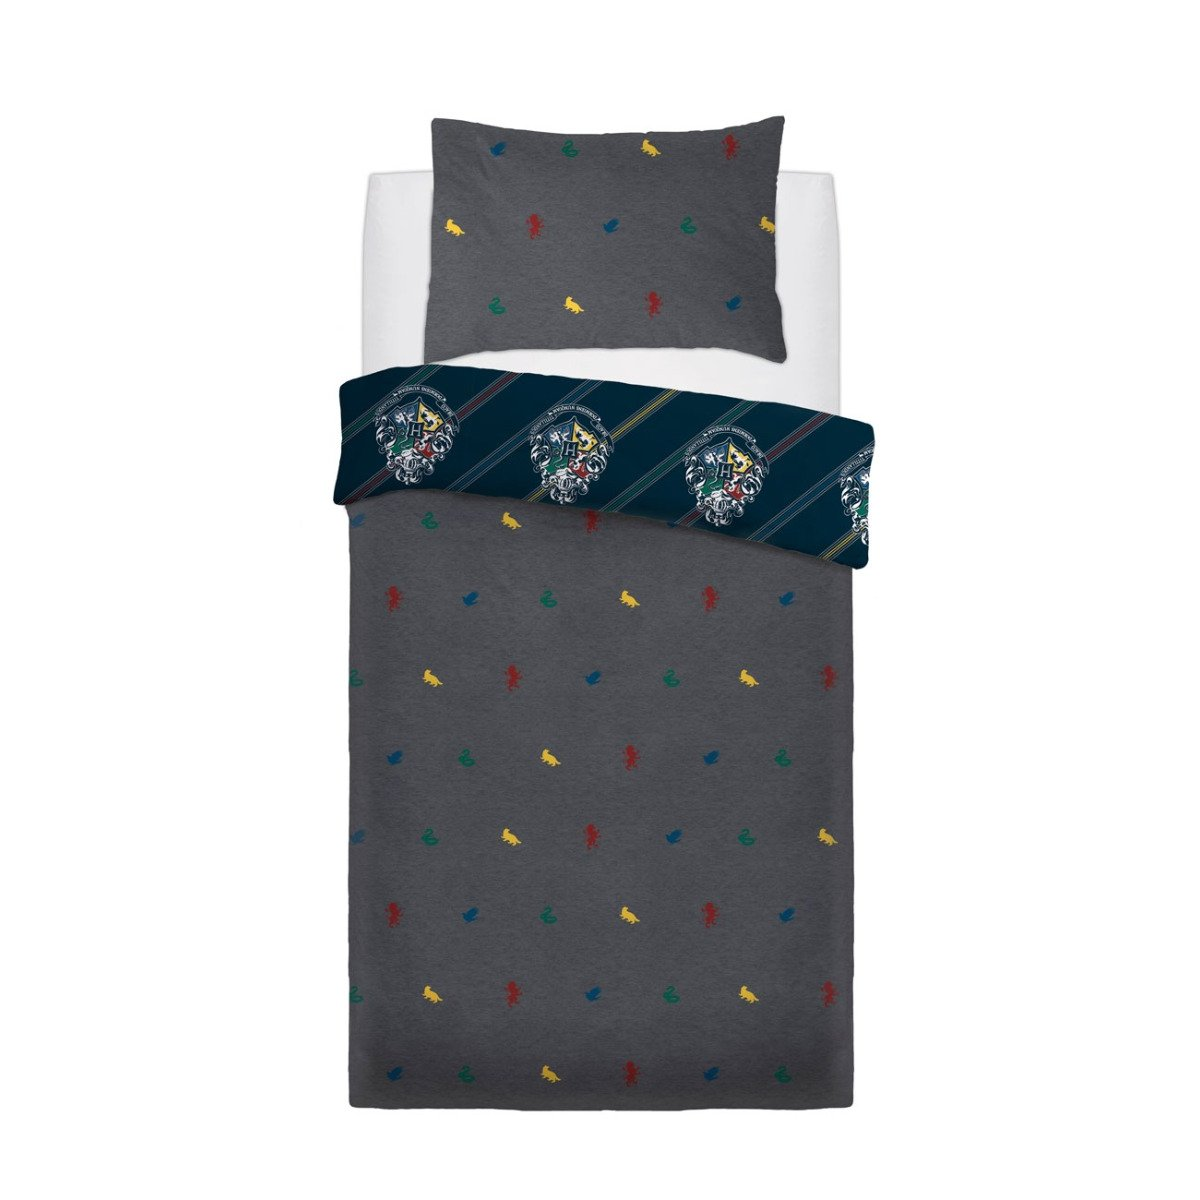 Harry Potter House Colours Bedding - Reversible Duvet Cover and Pillowcase Set